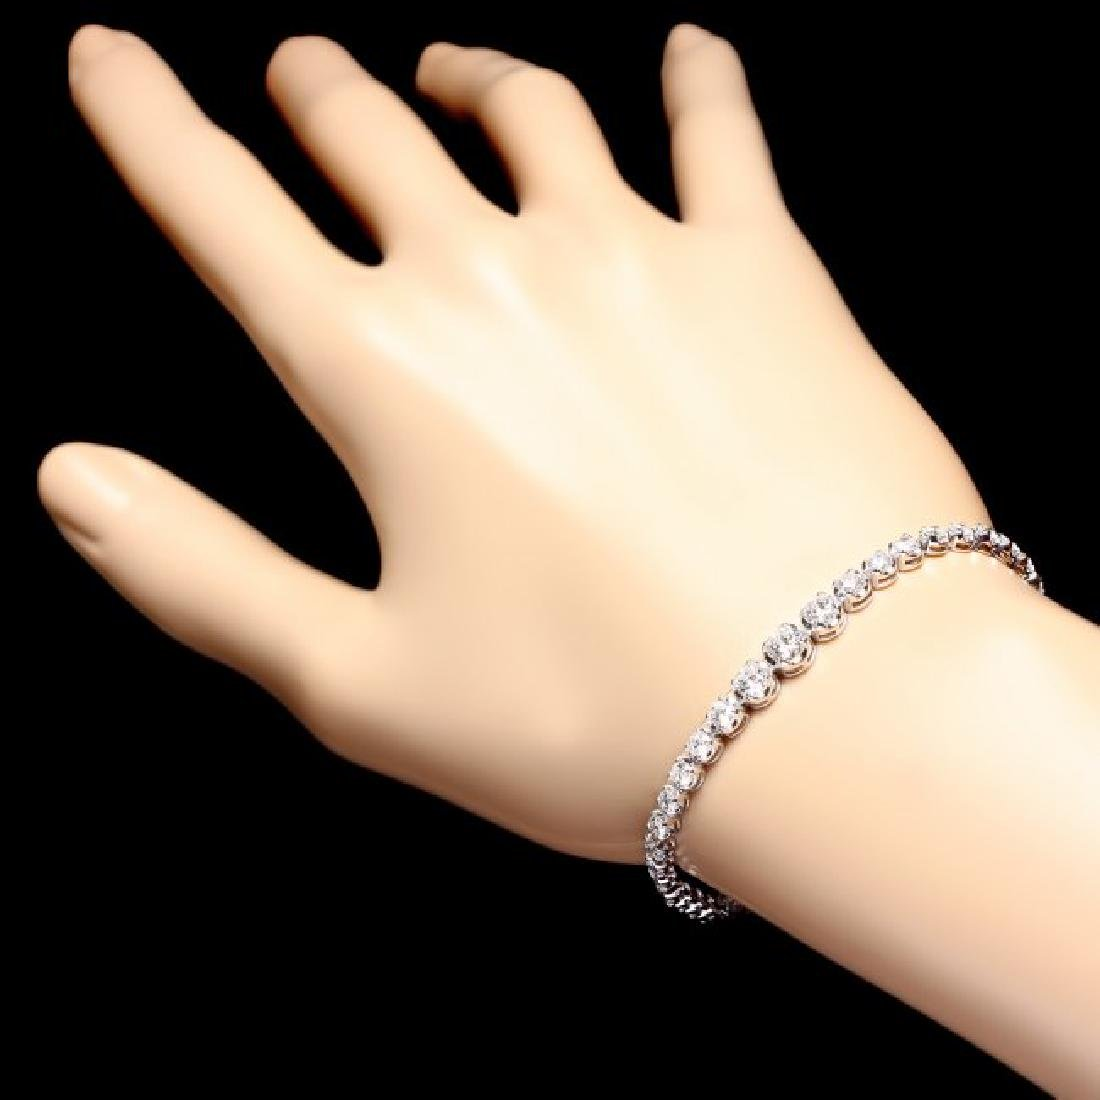 18k White Gold 4.50ct Diamond Bracelet - 5